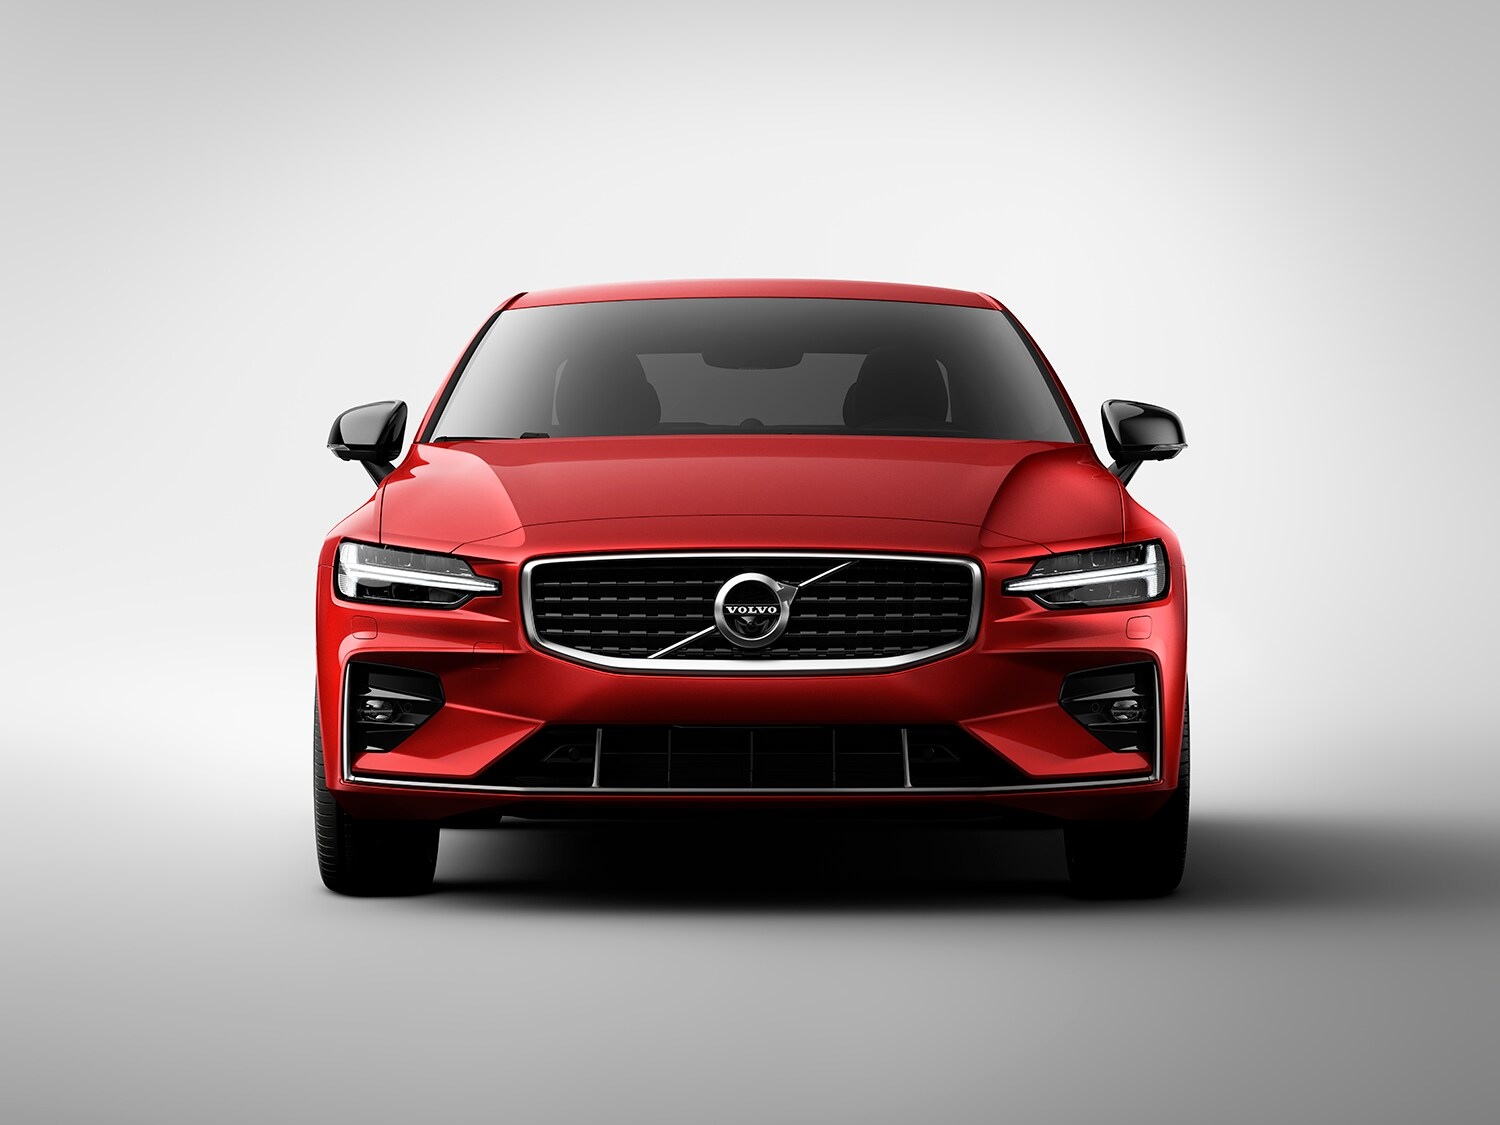 Studio image of the Volvo S60